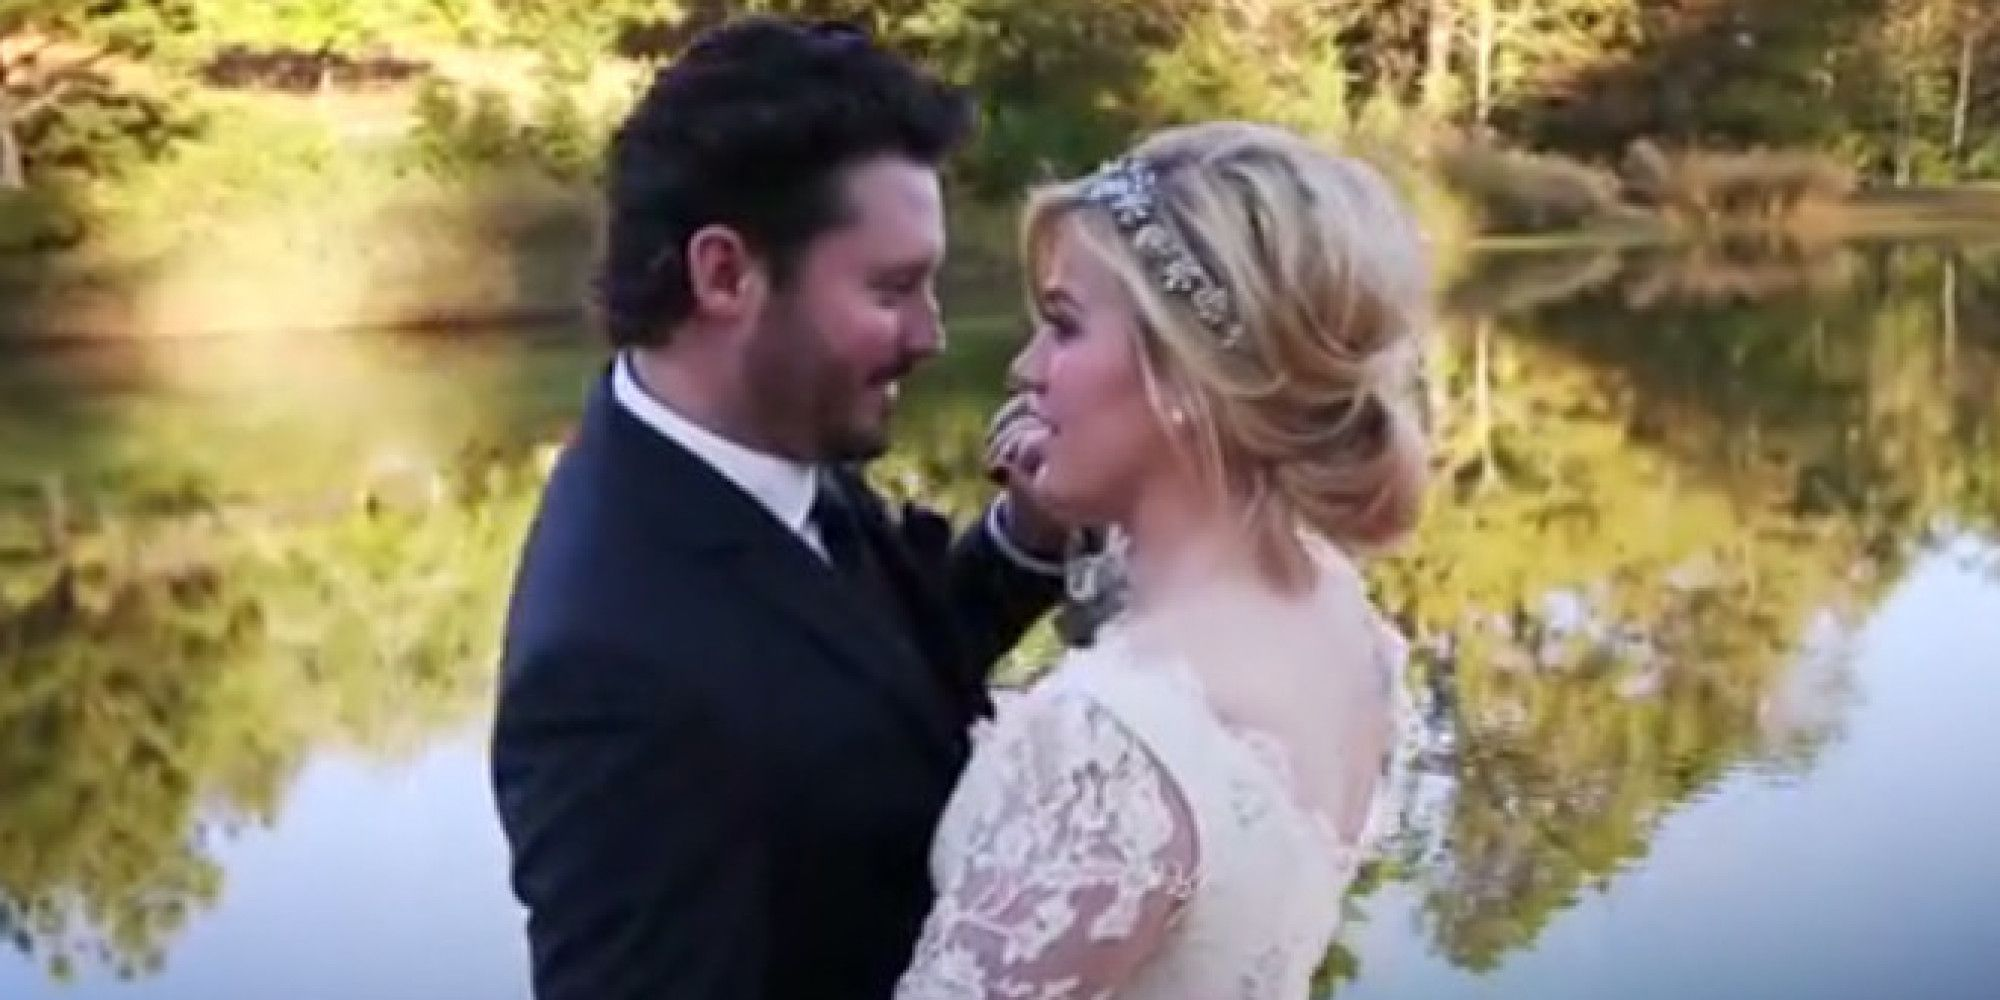 Kelly Clarkson S Wedding Video Will Make Your Day Kelly Clarkson Wedding Kelly Clarkson Wedding Video